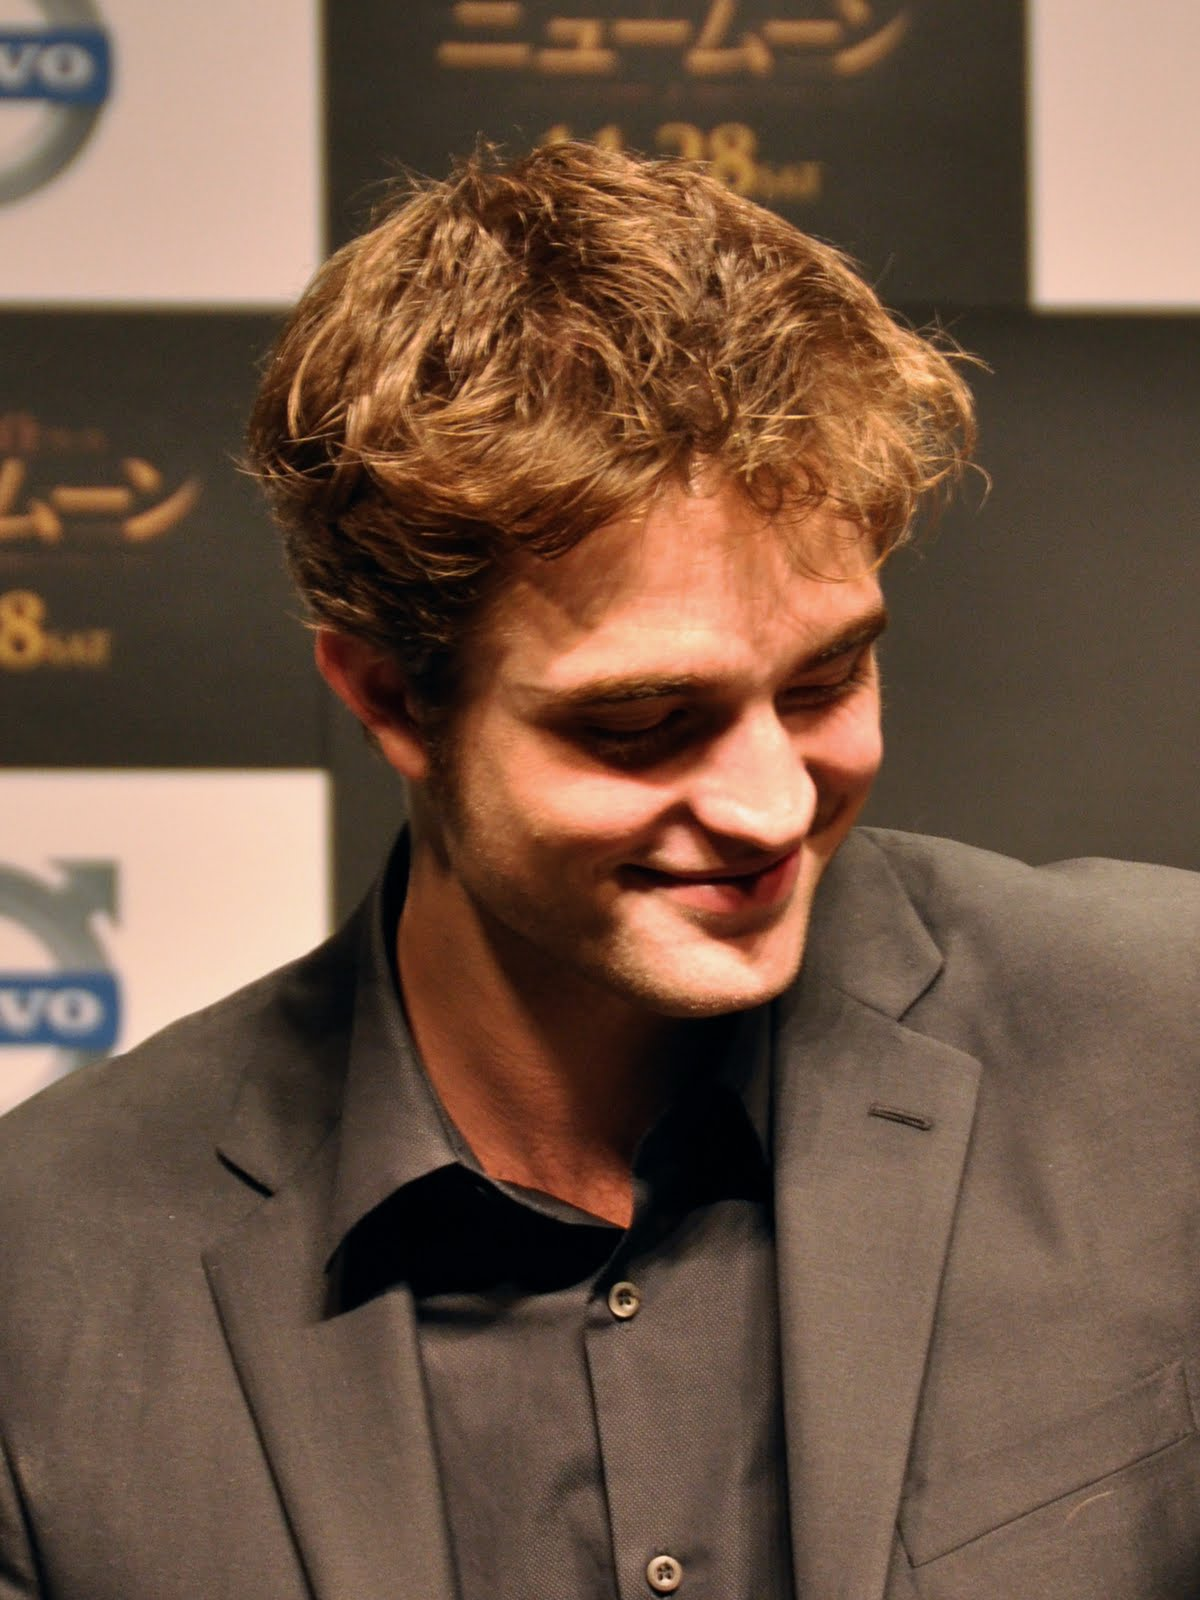 iMGSRC.RU Young Nudist Girls  Swooning In Tokyo: Fan Pictures From 'New Moon' Fan Event 11/3/09